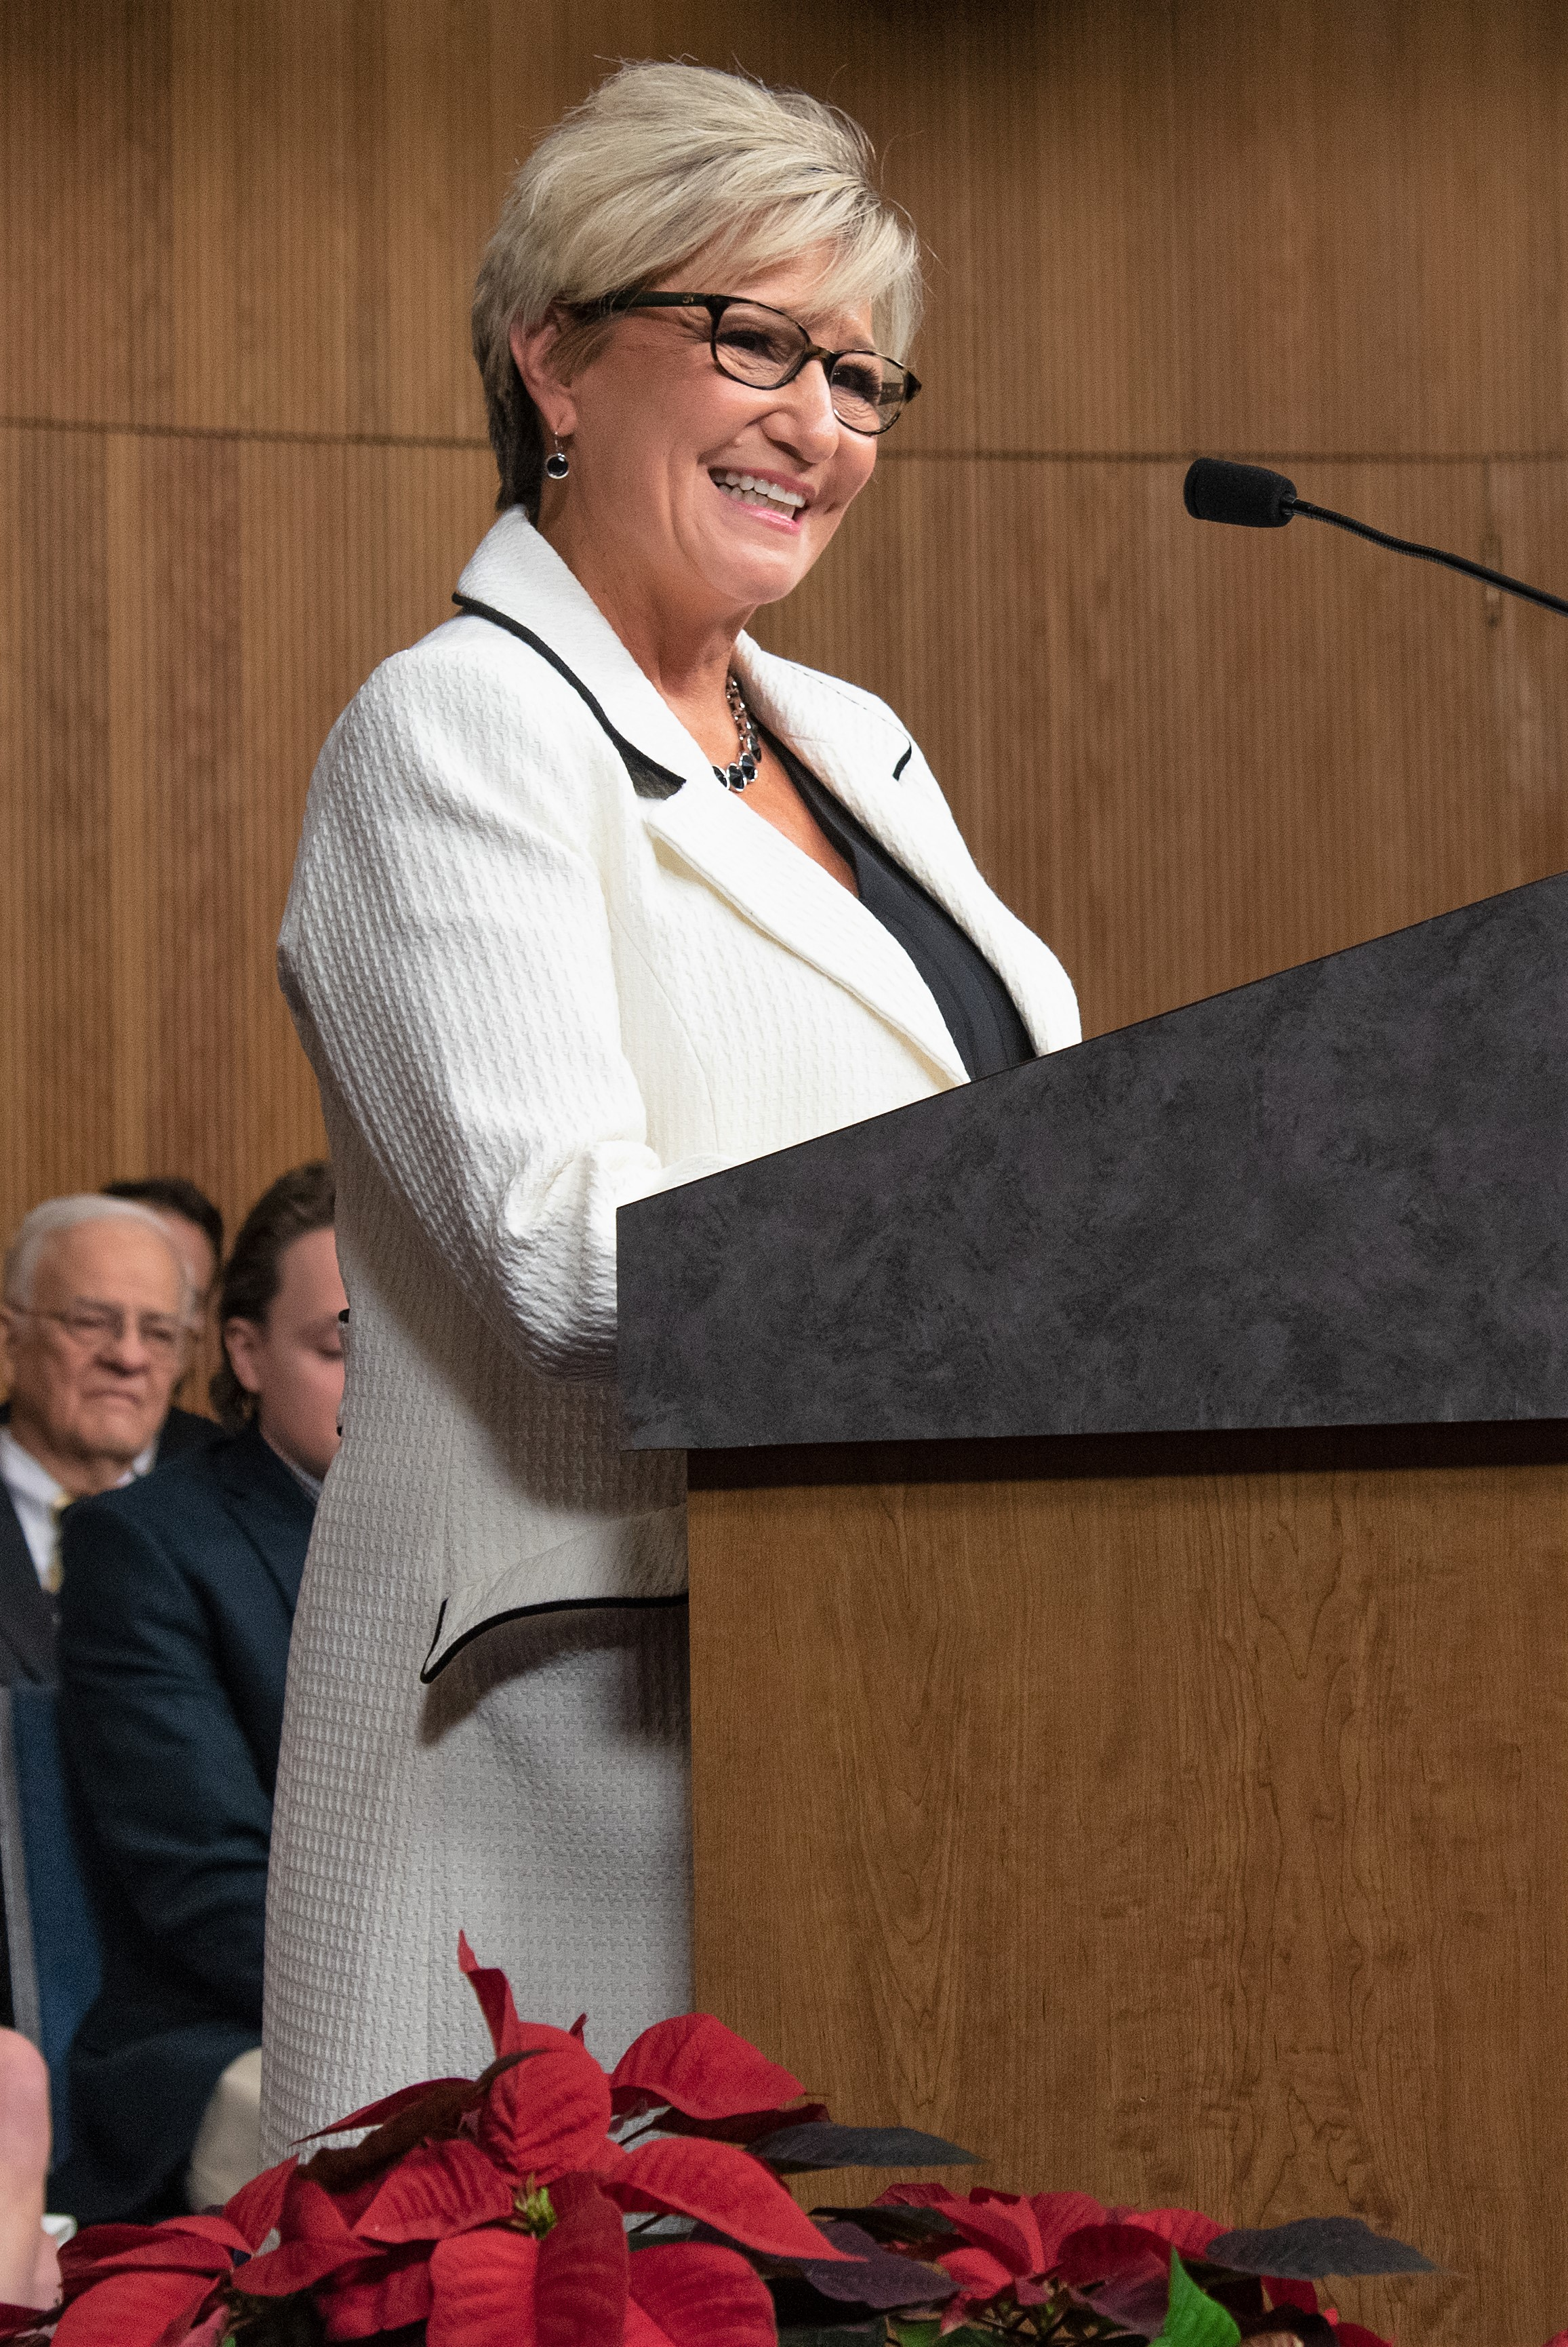 Mayor Maureen Miller Brosnan